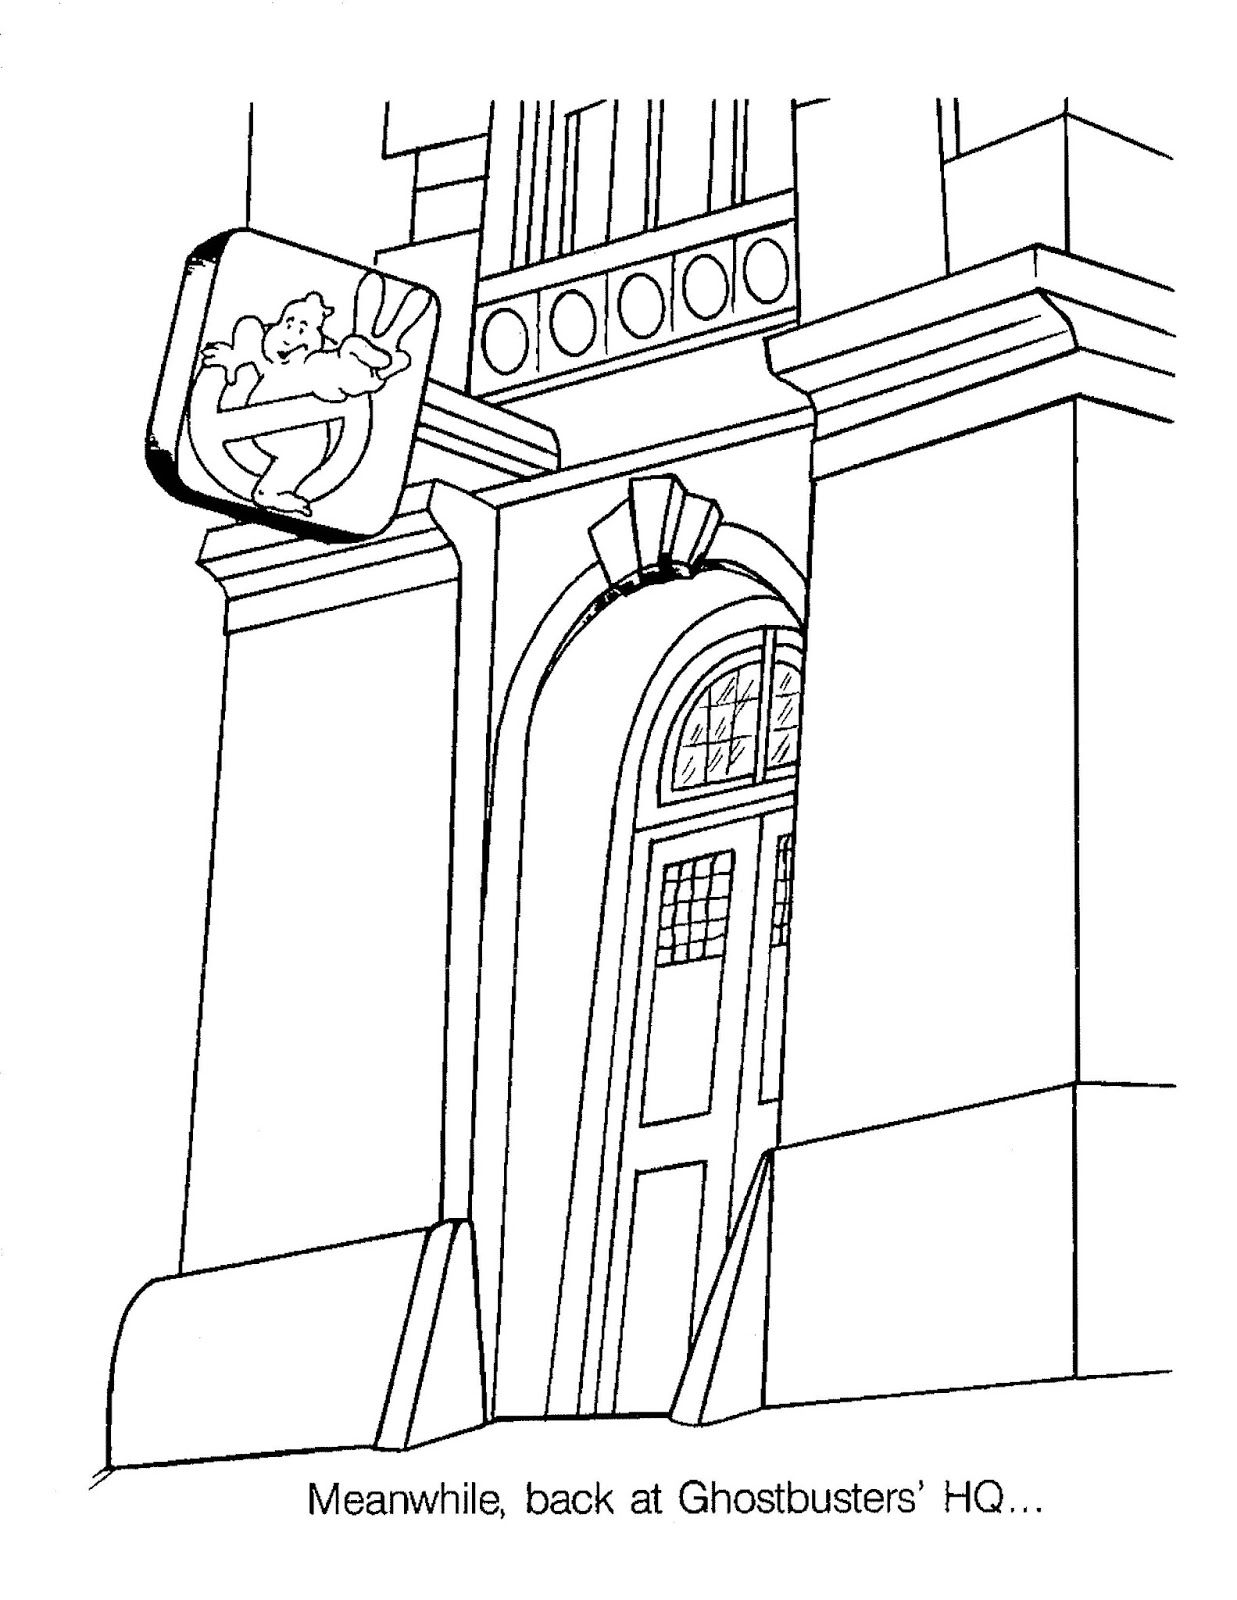 ghostbusters car coloring pages ghostbusters coloring pages for kids printable free coloring car ghostbusters pages